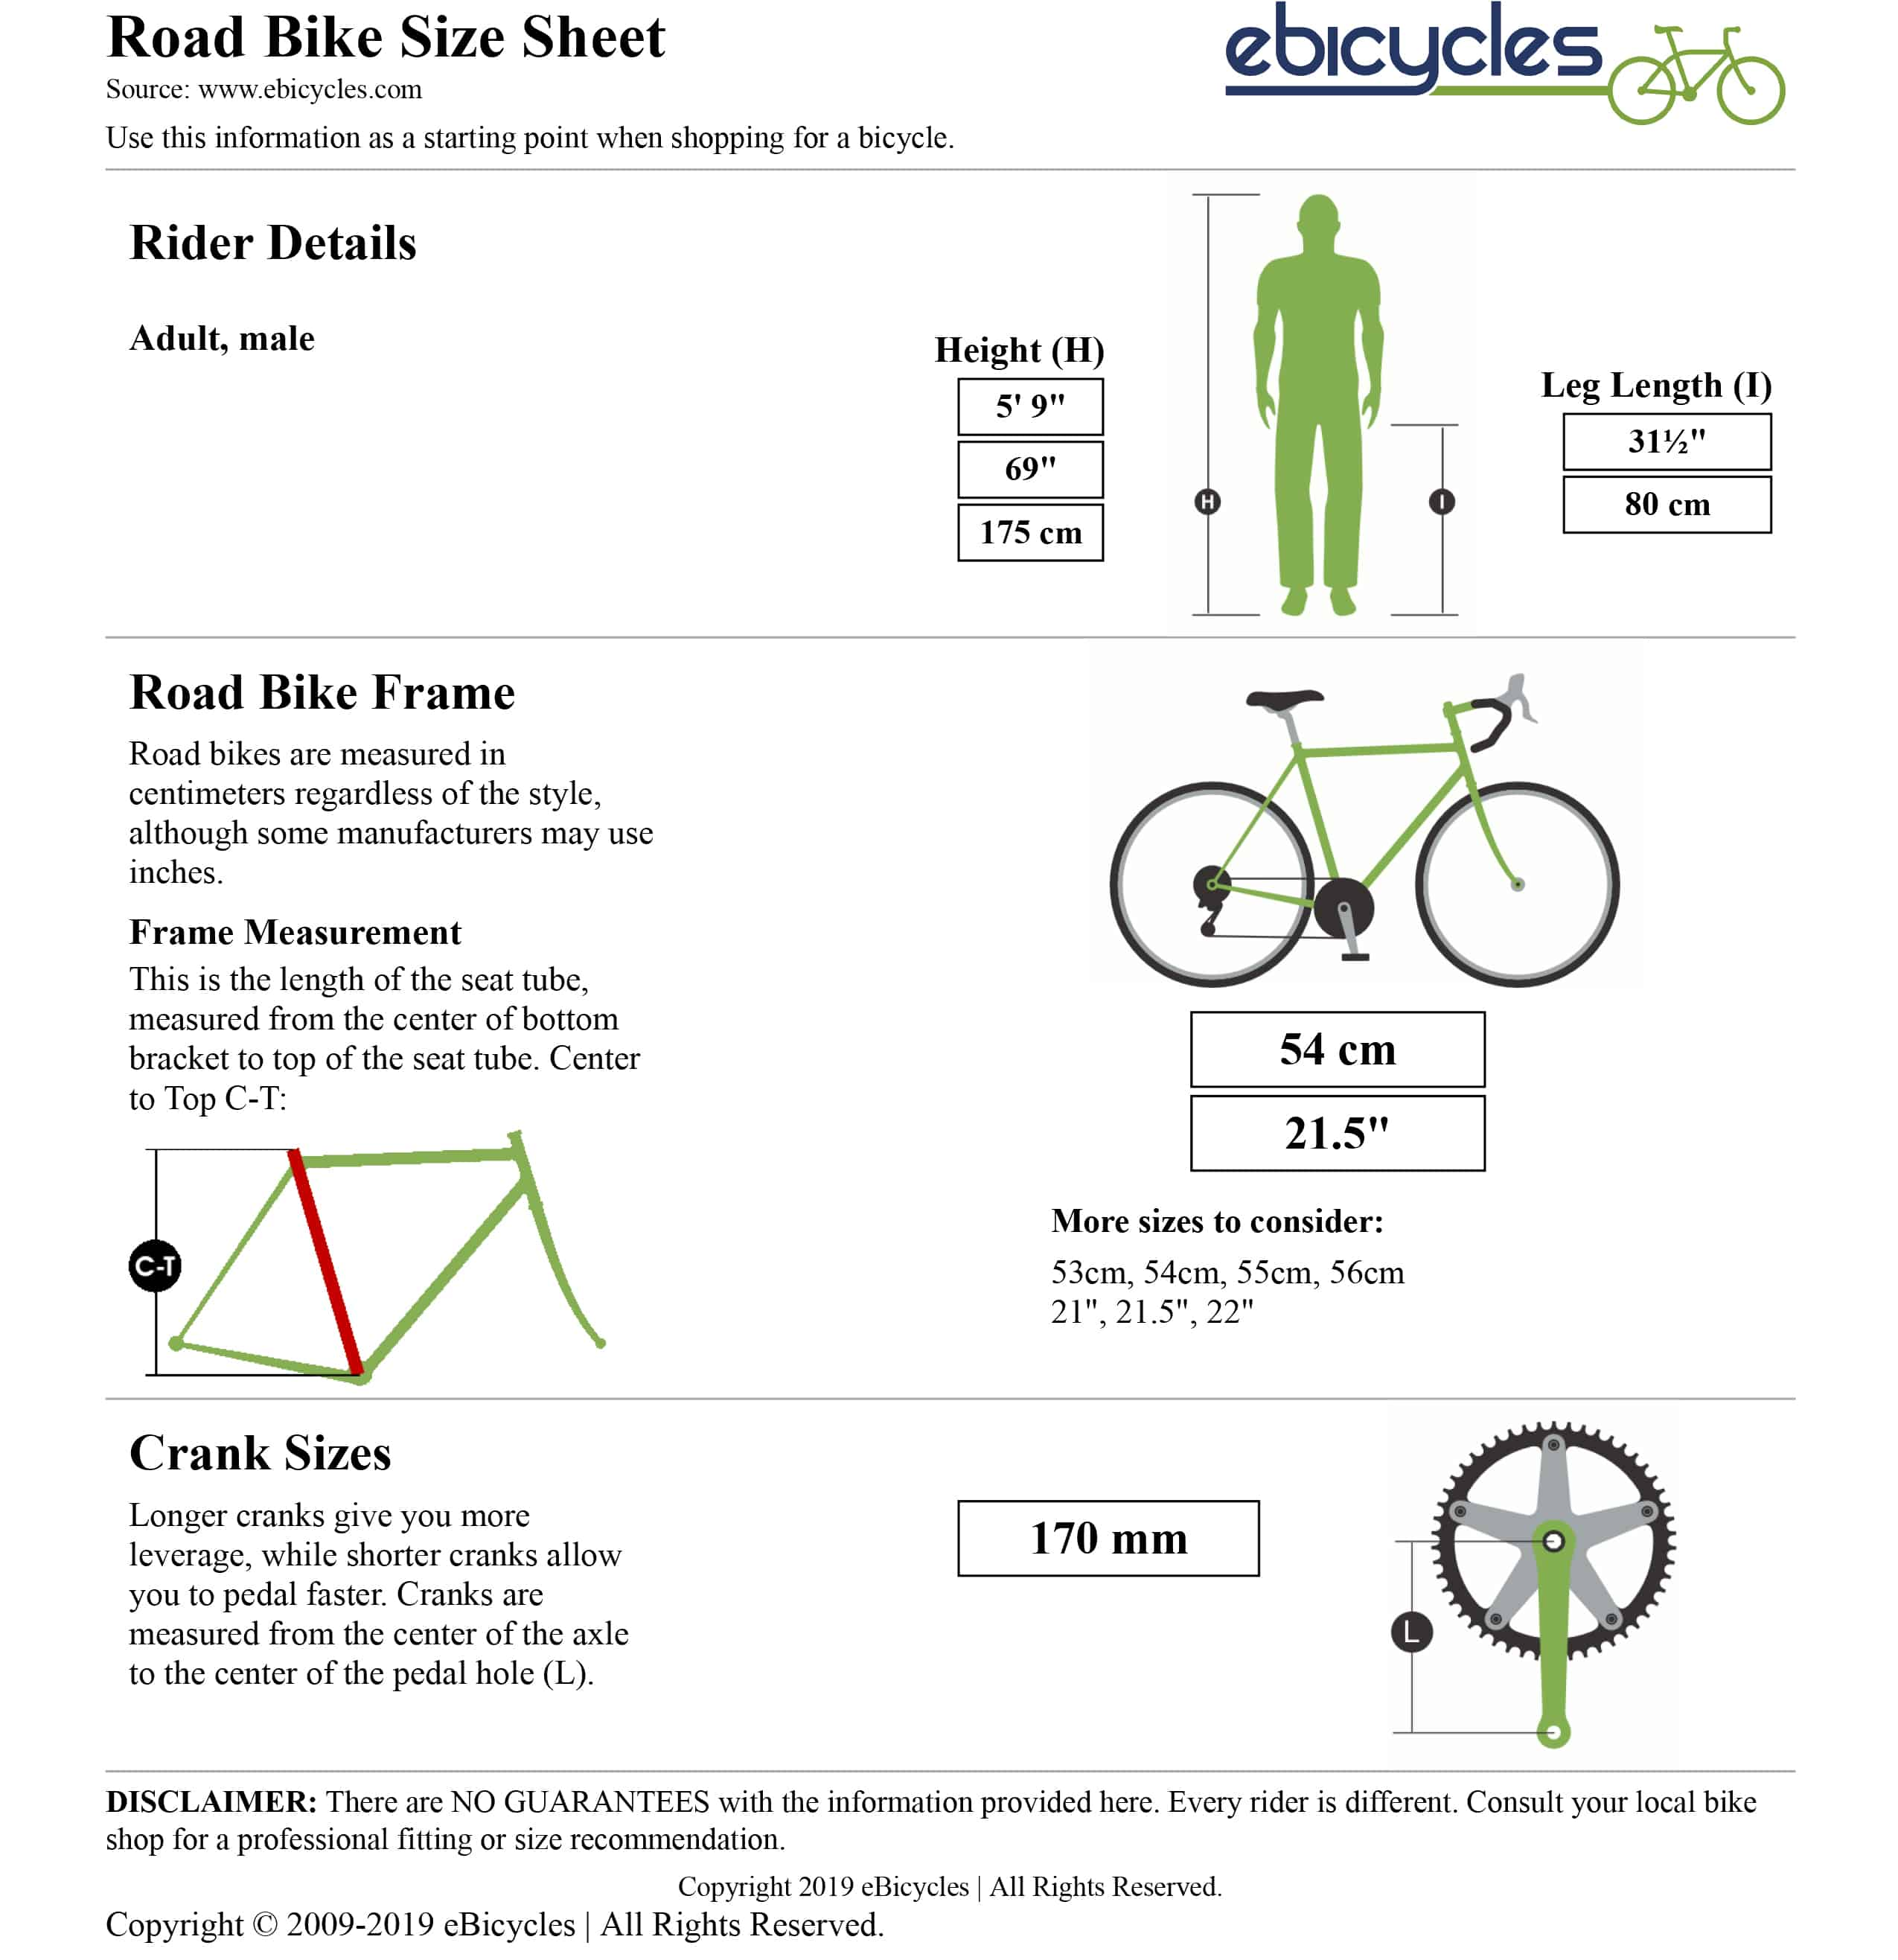 Bike Size Chart | Choose The Right Size Bike in 5 Minutes [Infographic]